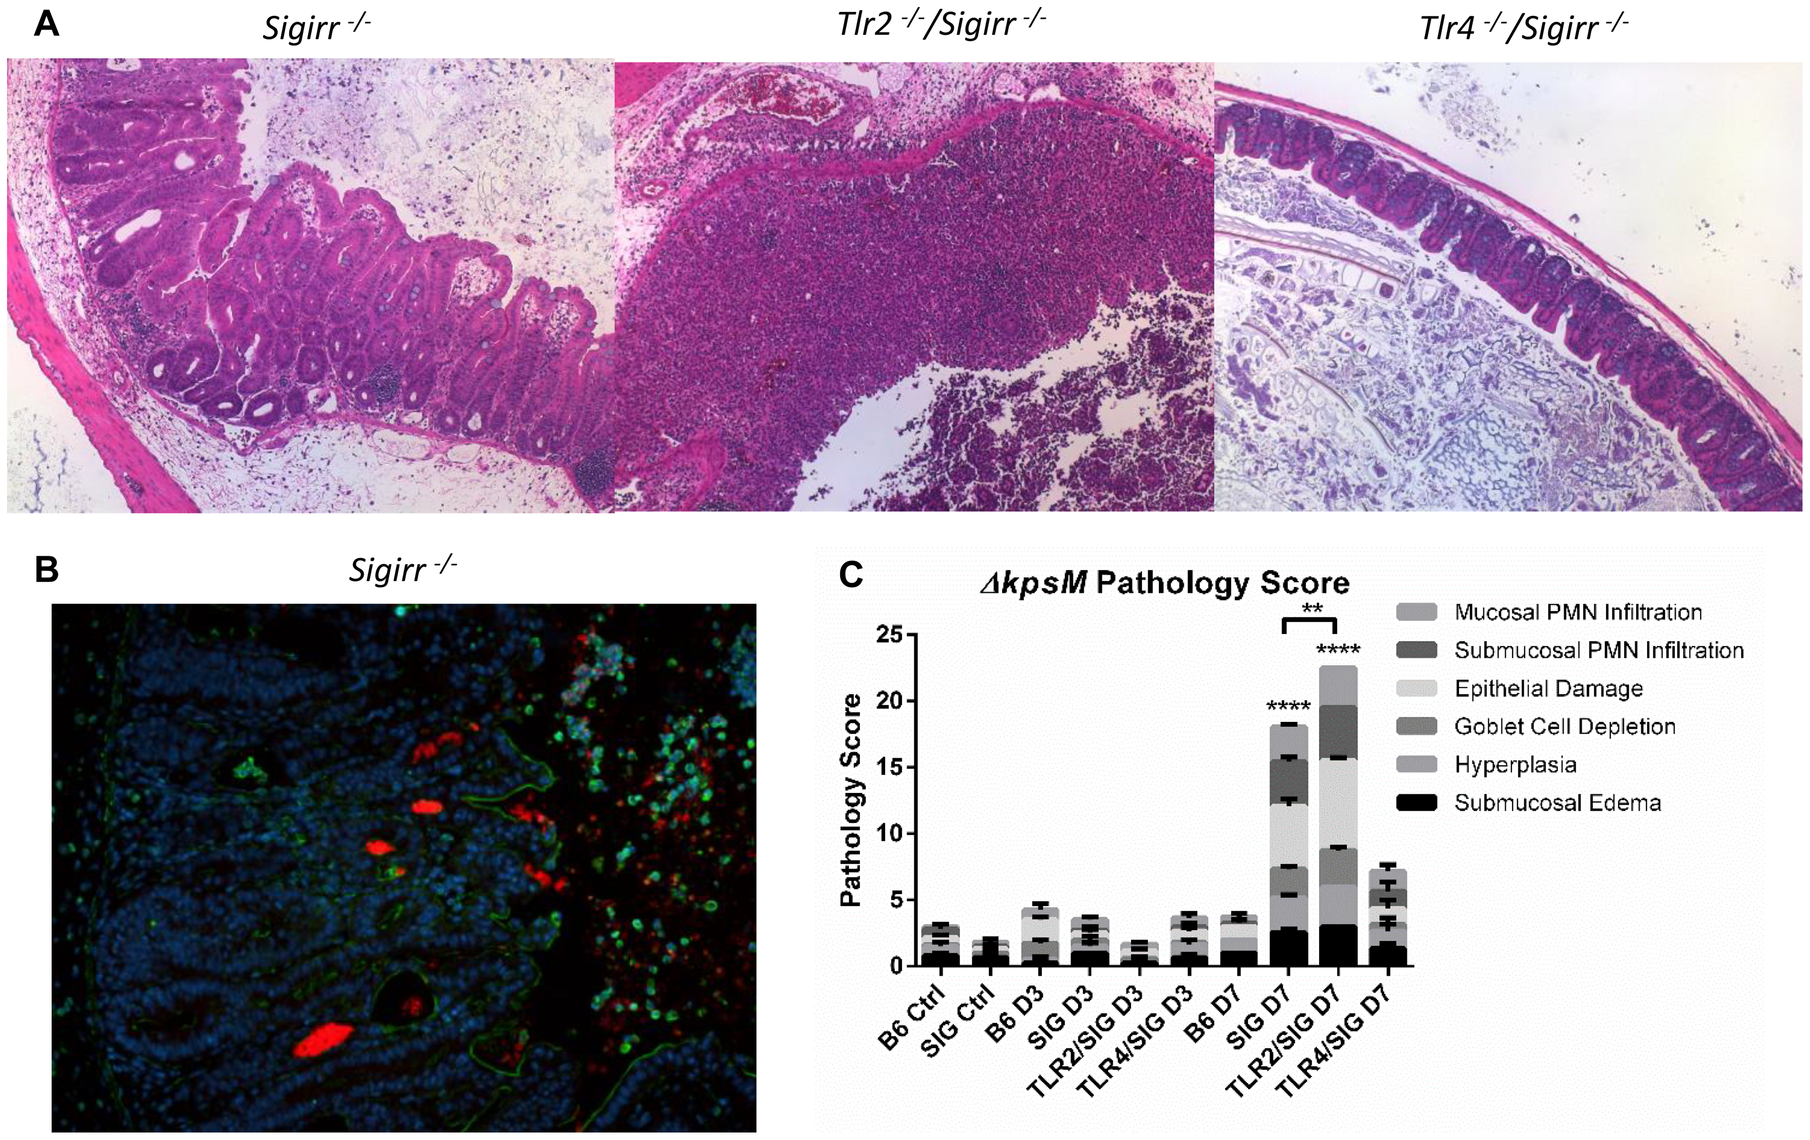 Colonization and pathology of <i>Sigirr<sup>−/−</sup></i> and TLR-deficient mice by <i>C. jejuni ΔkpsM in vivo</i>.